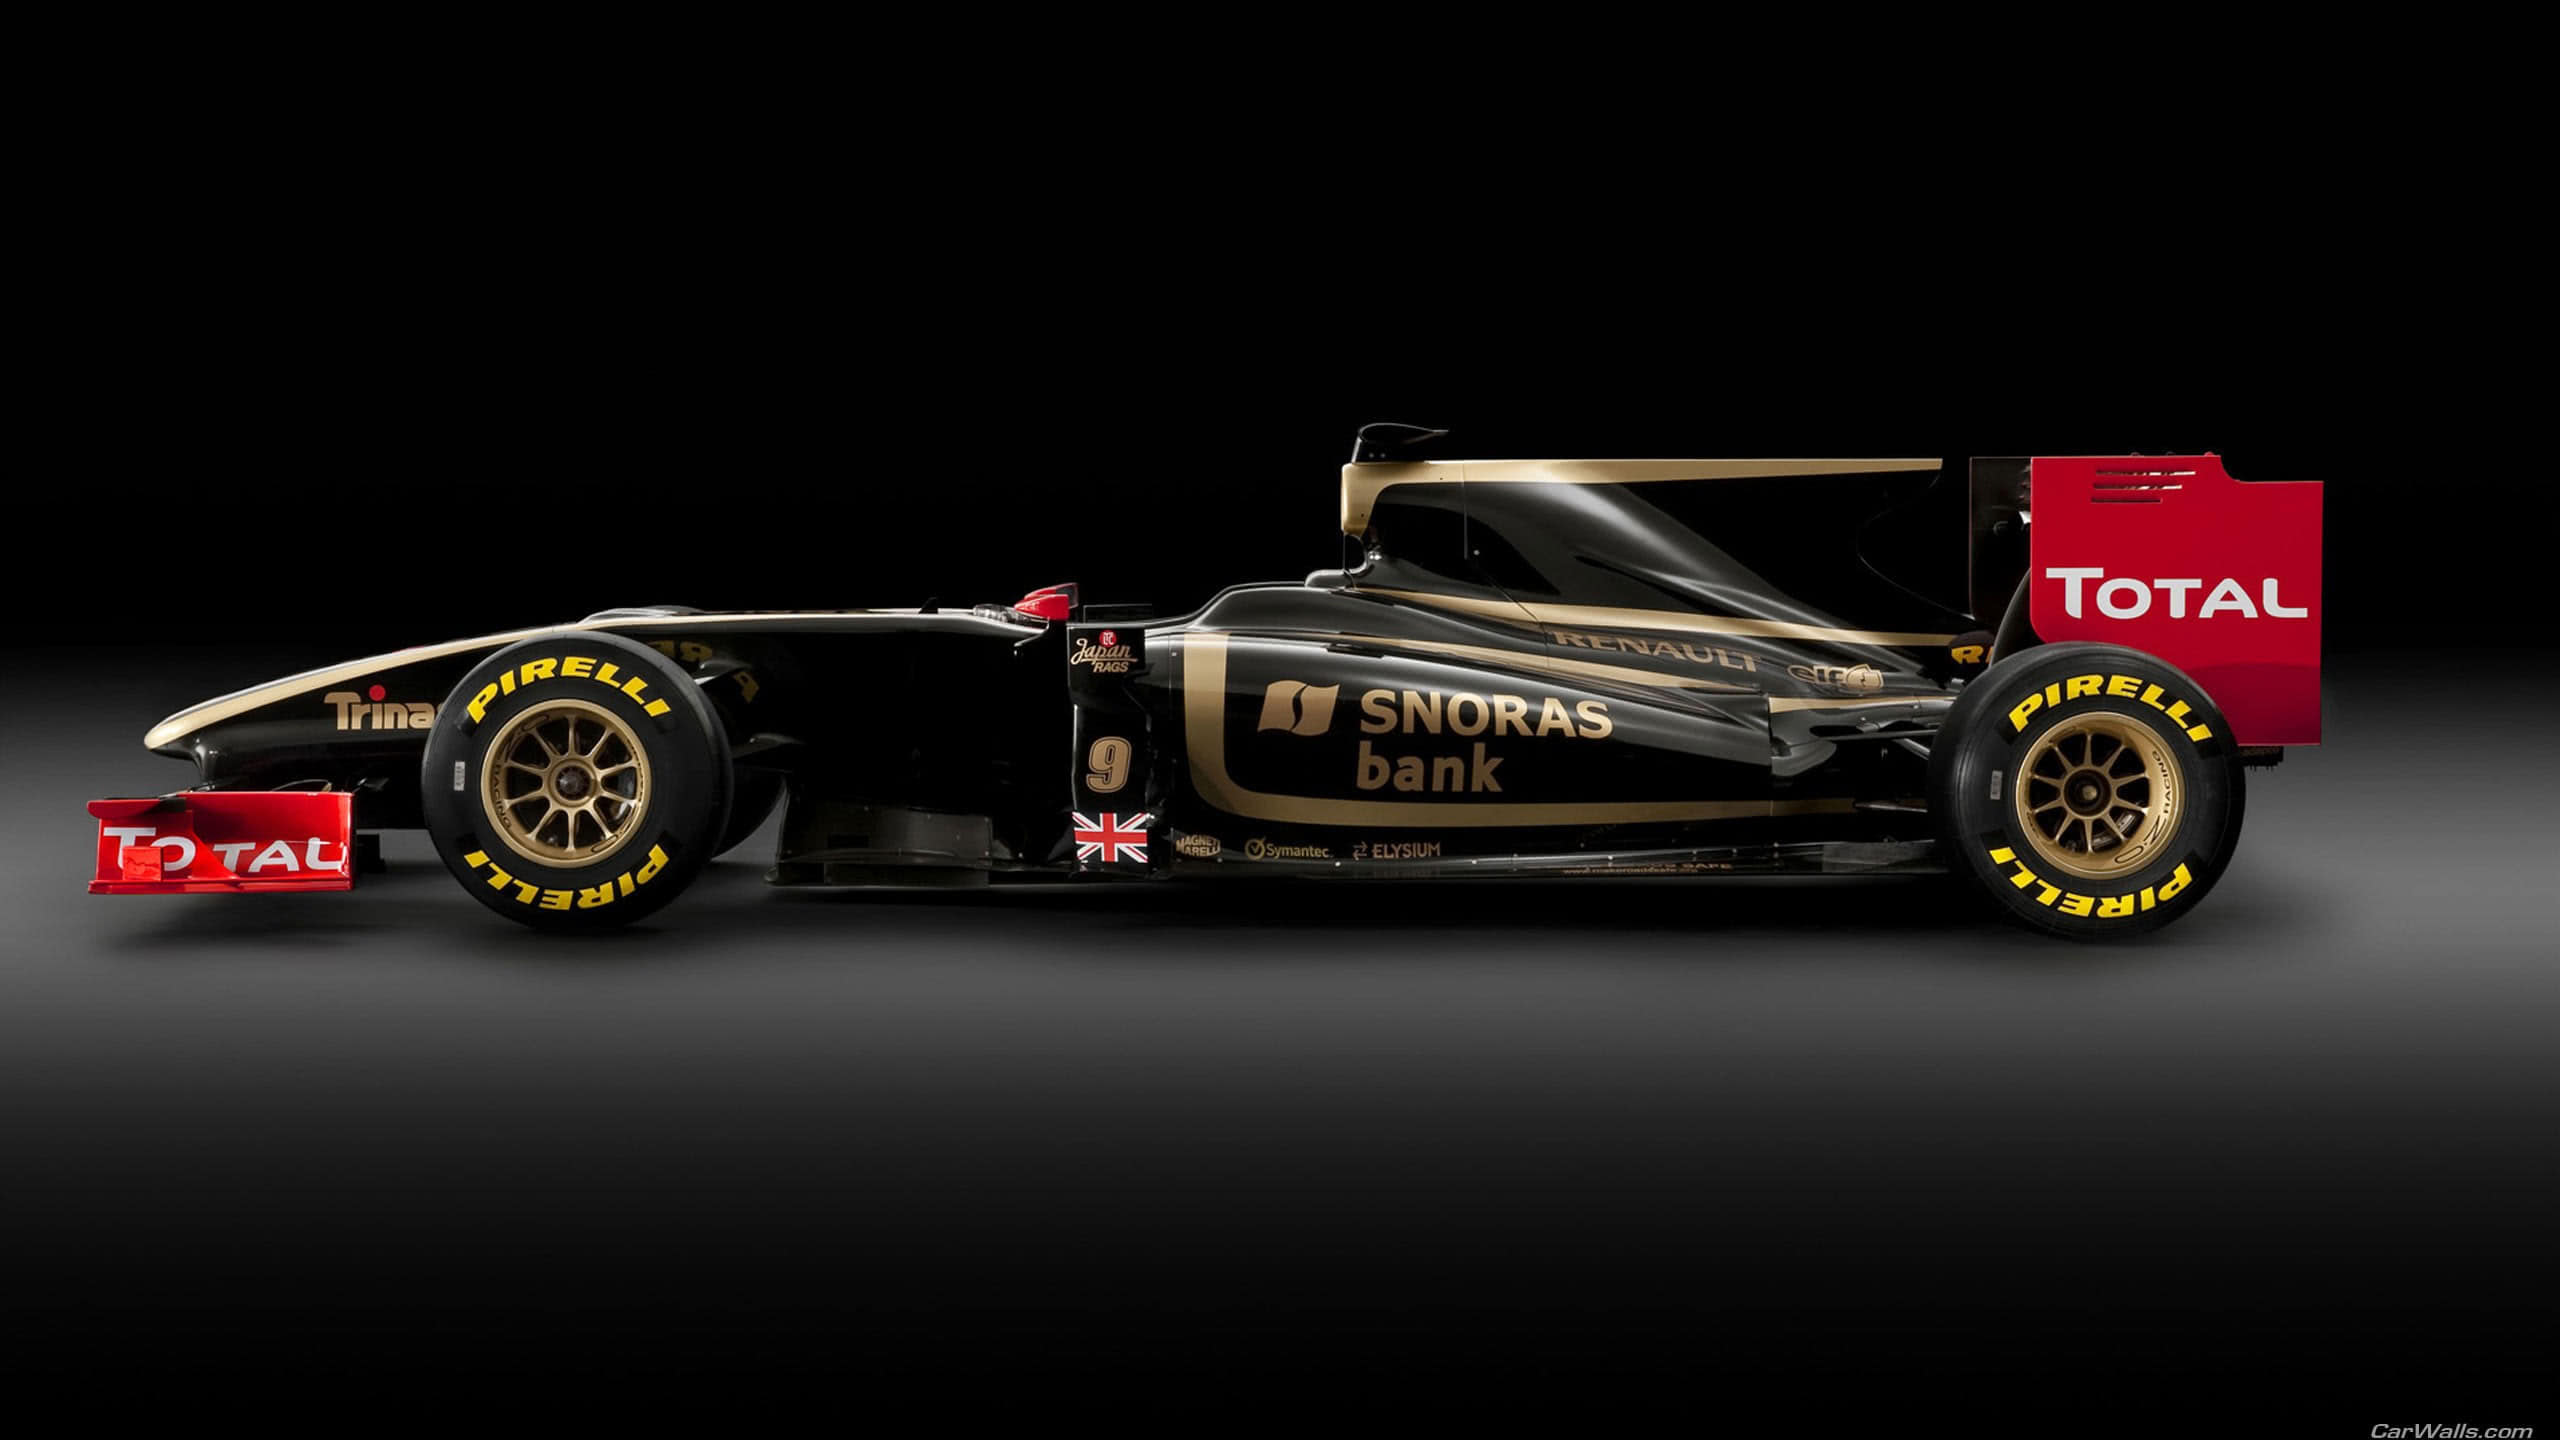 lotus renault gp side wqhd 1440p wallpaper